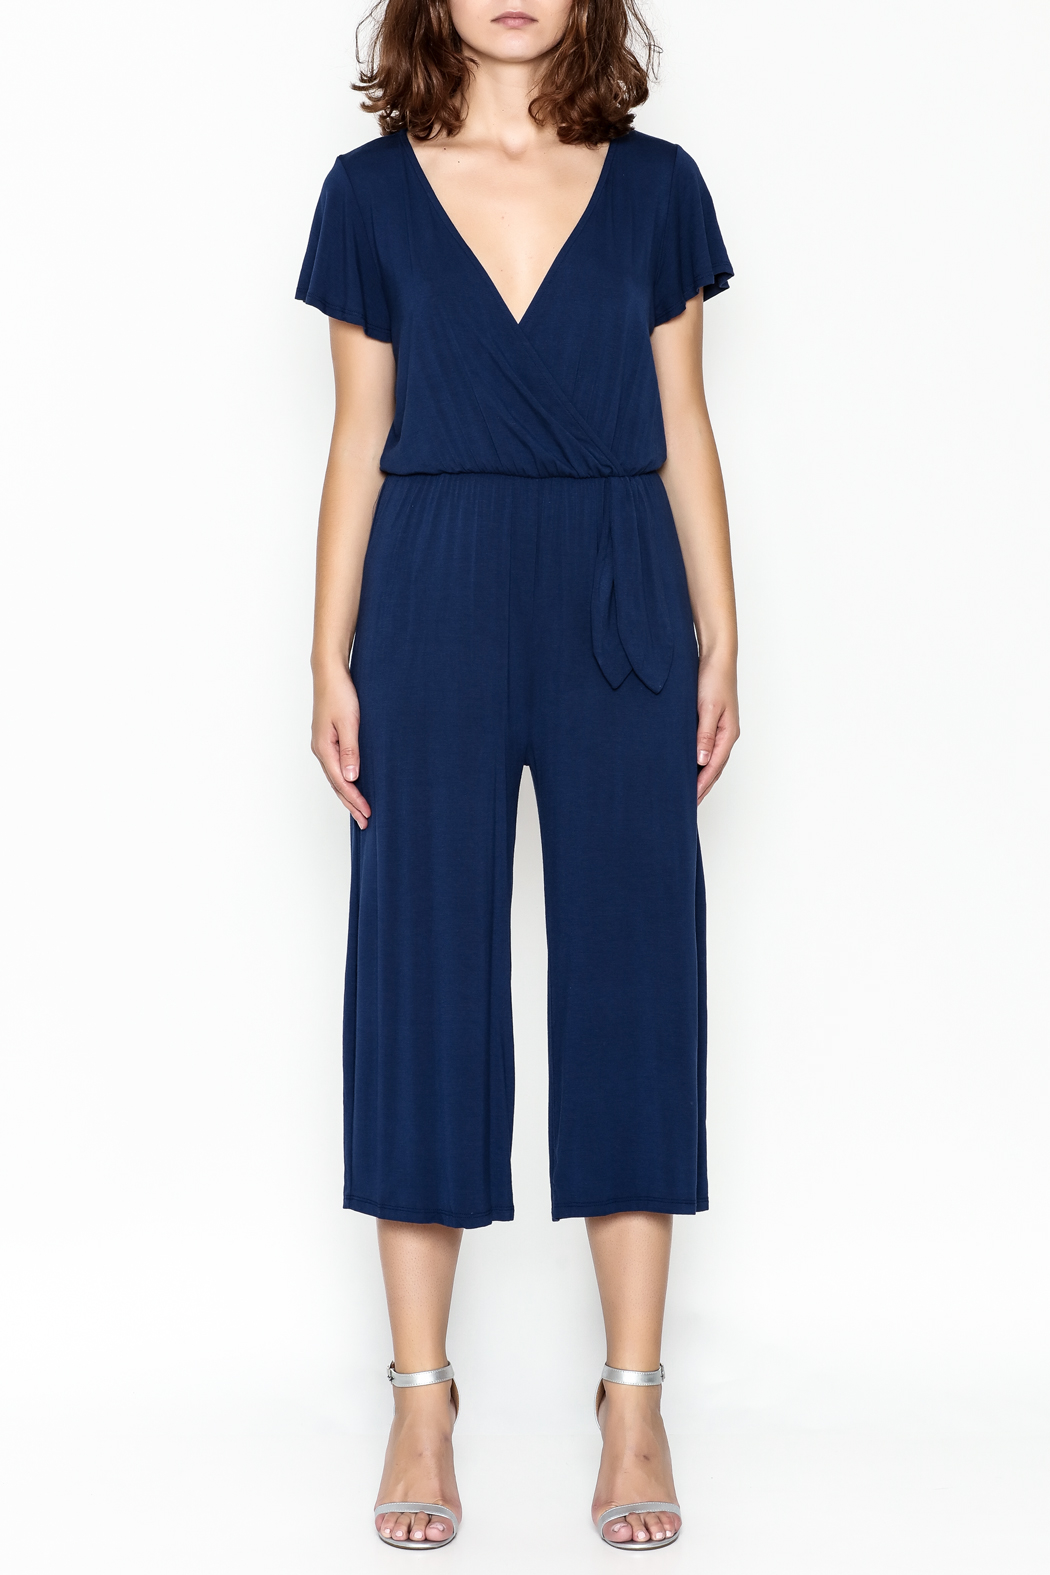 Everly The Sophie Jumpsuit - Front Full Image